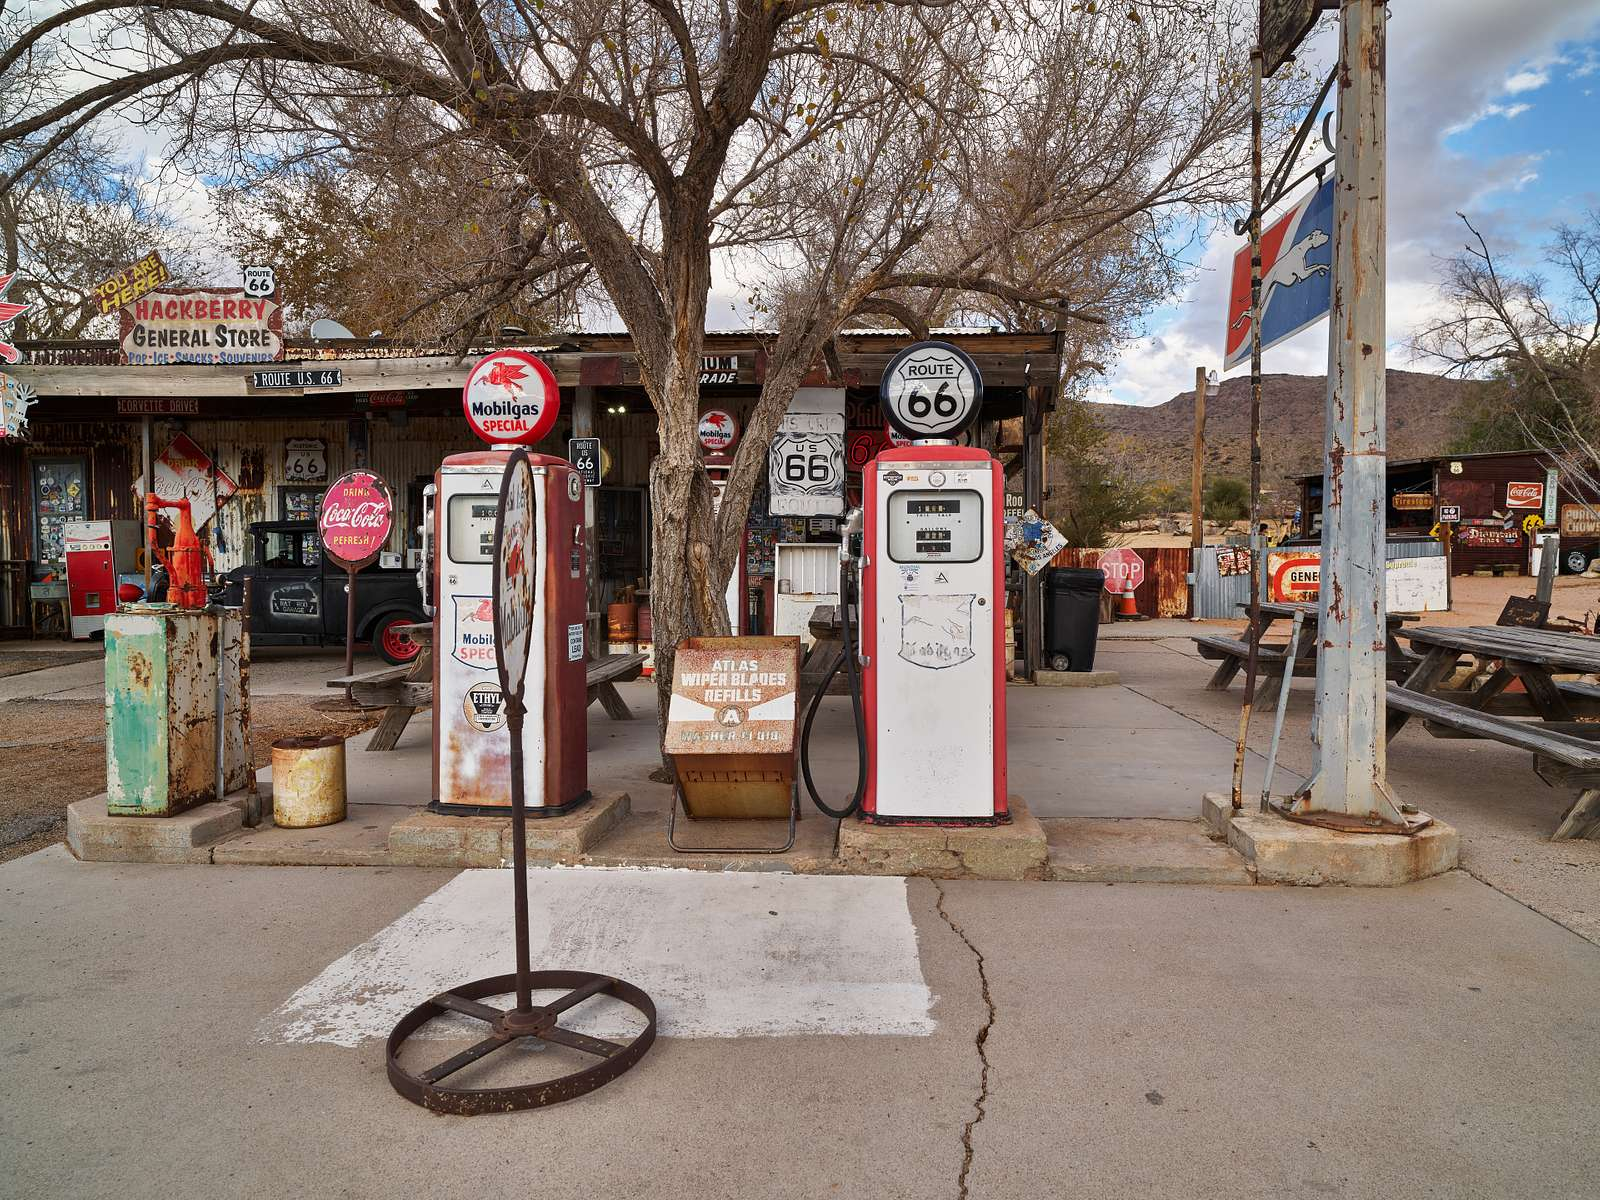 Scene at the Hackberry General Store in the dot of a place called Hackberry along old U.S. 66 in northwestern Arizona